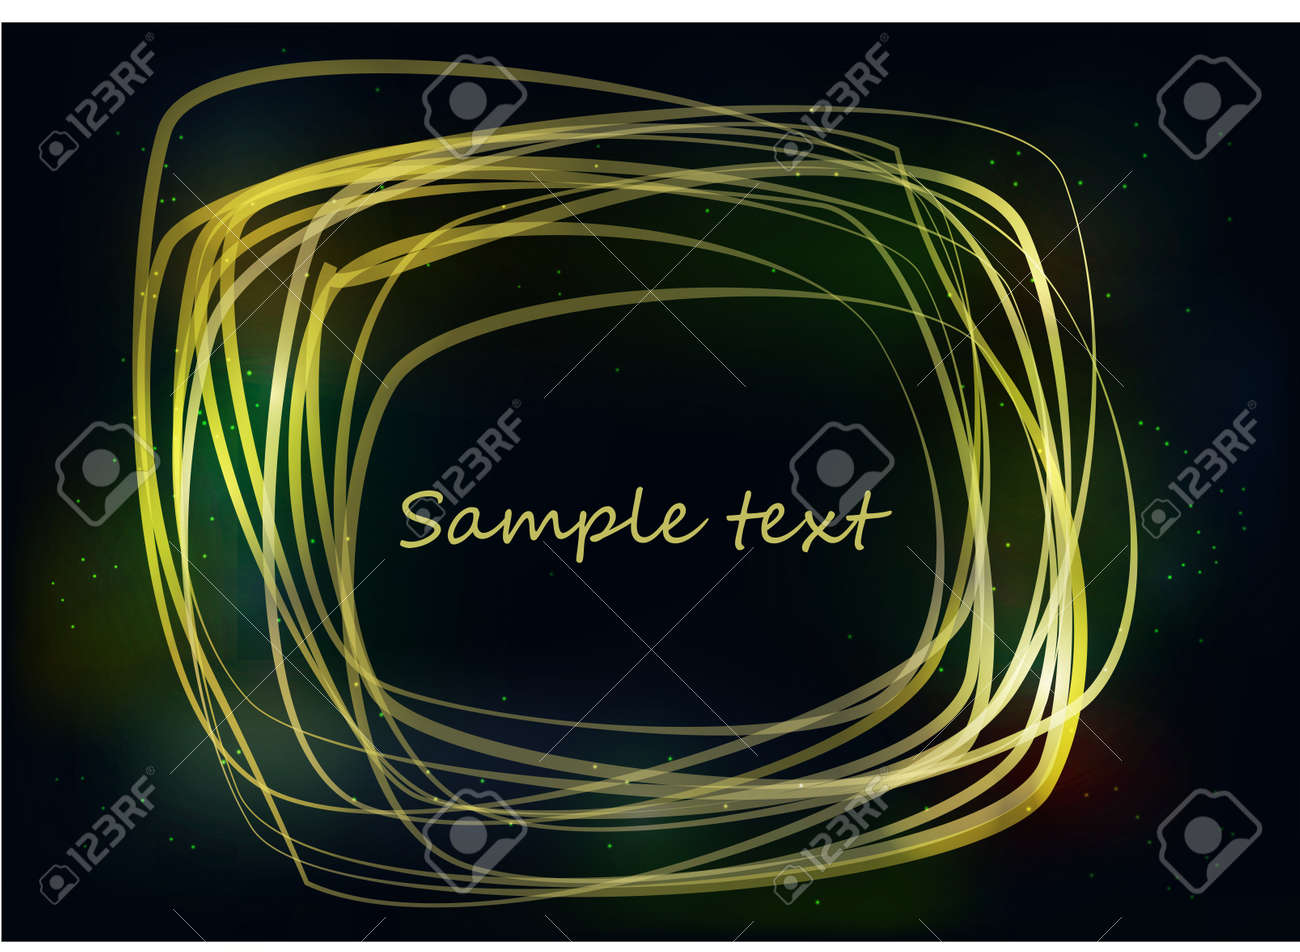 Yellow bright strokes forming an abstract frame on a dark background Stock Vector - 15528313